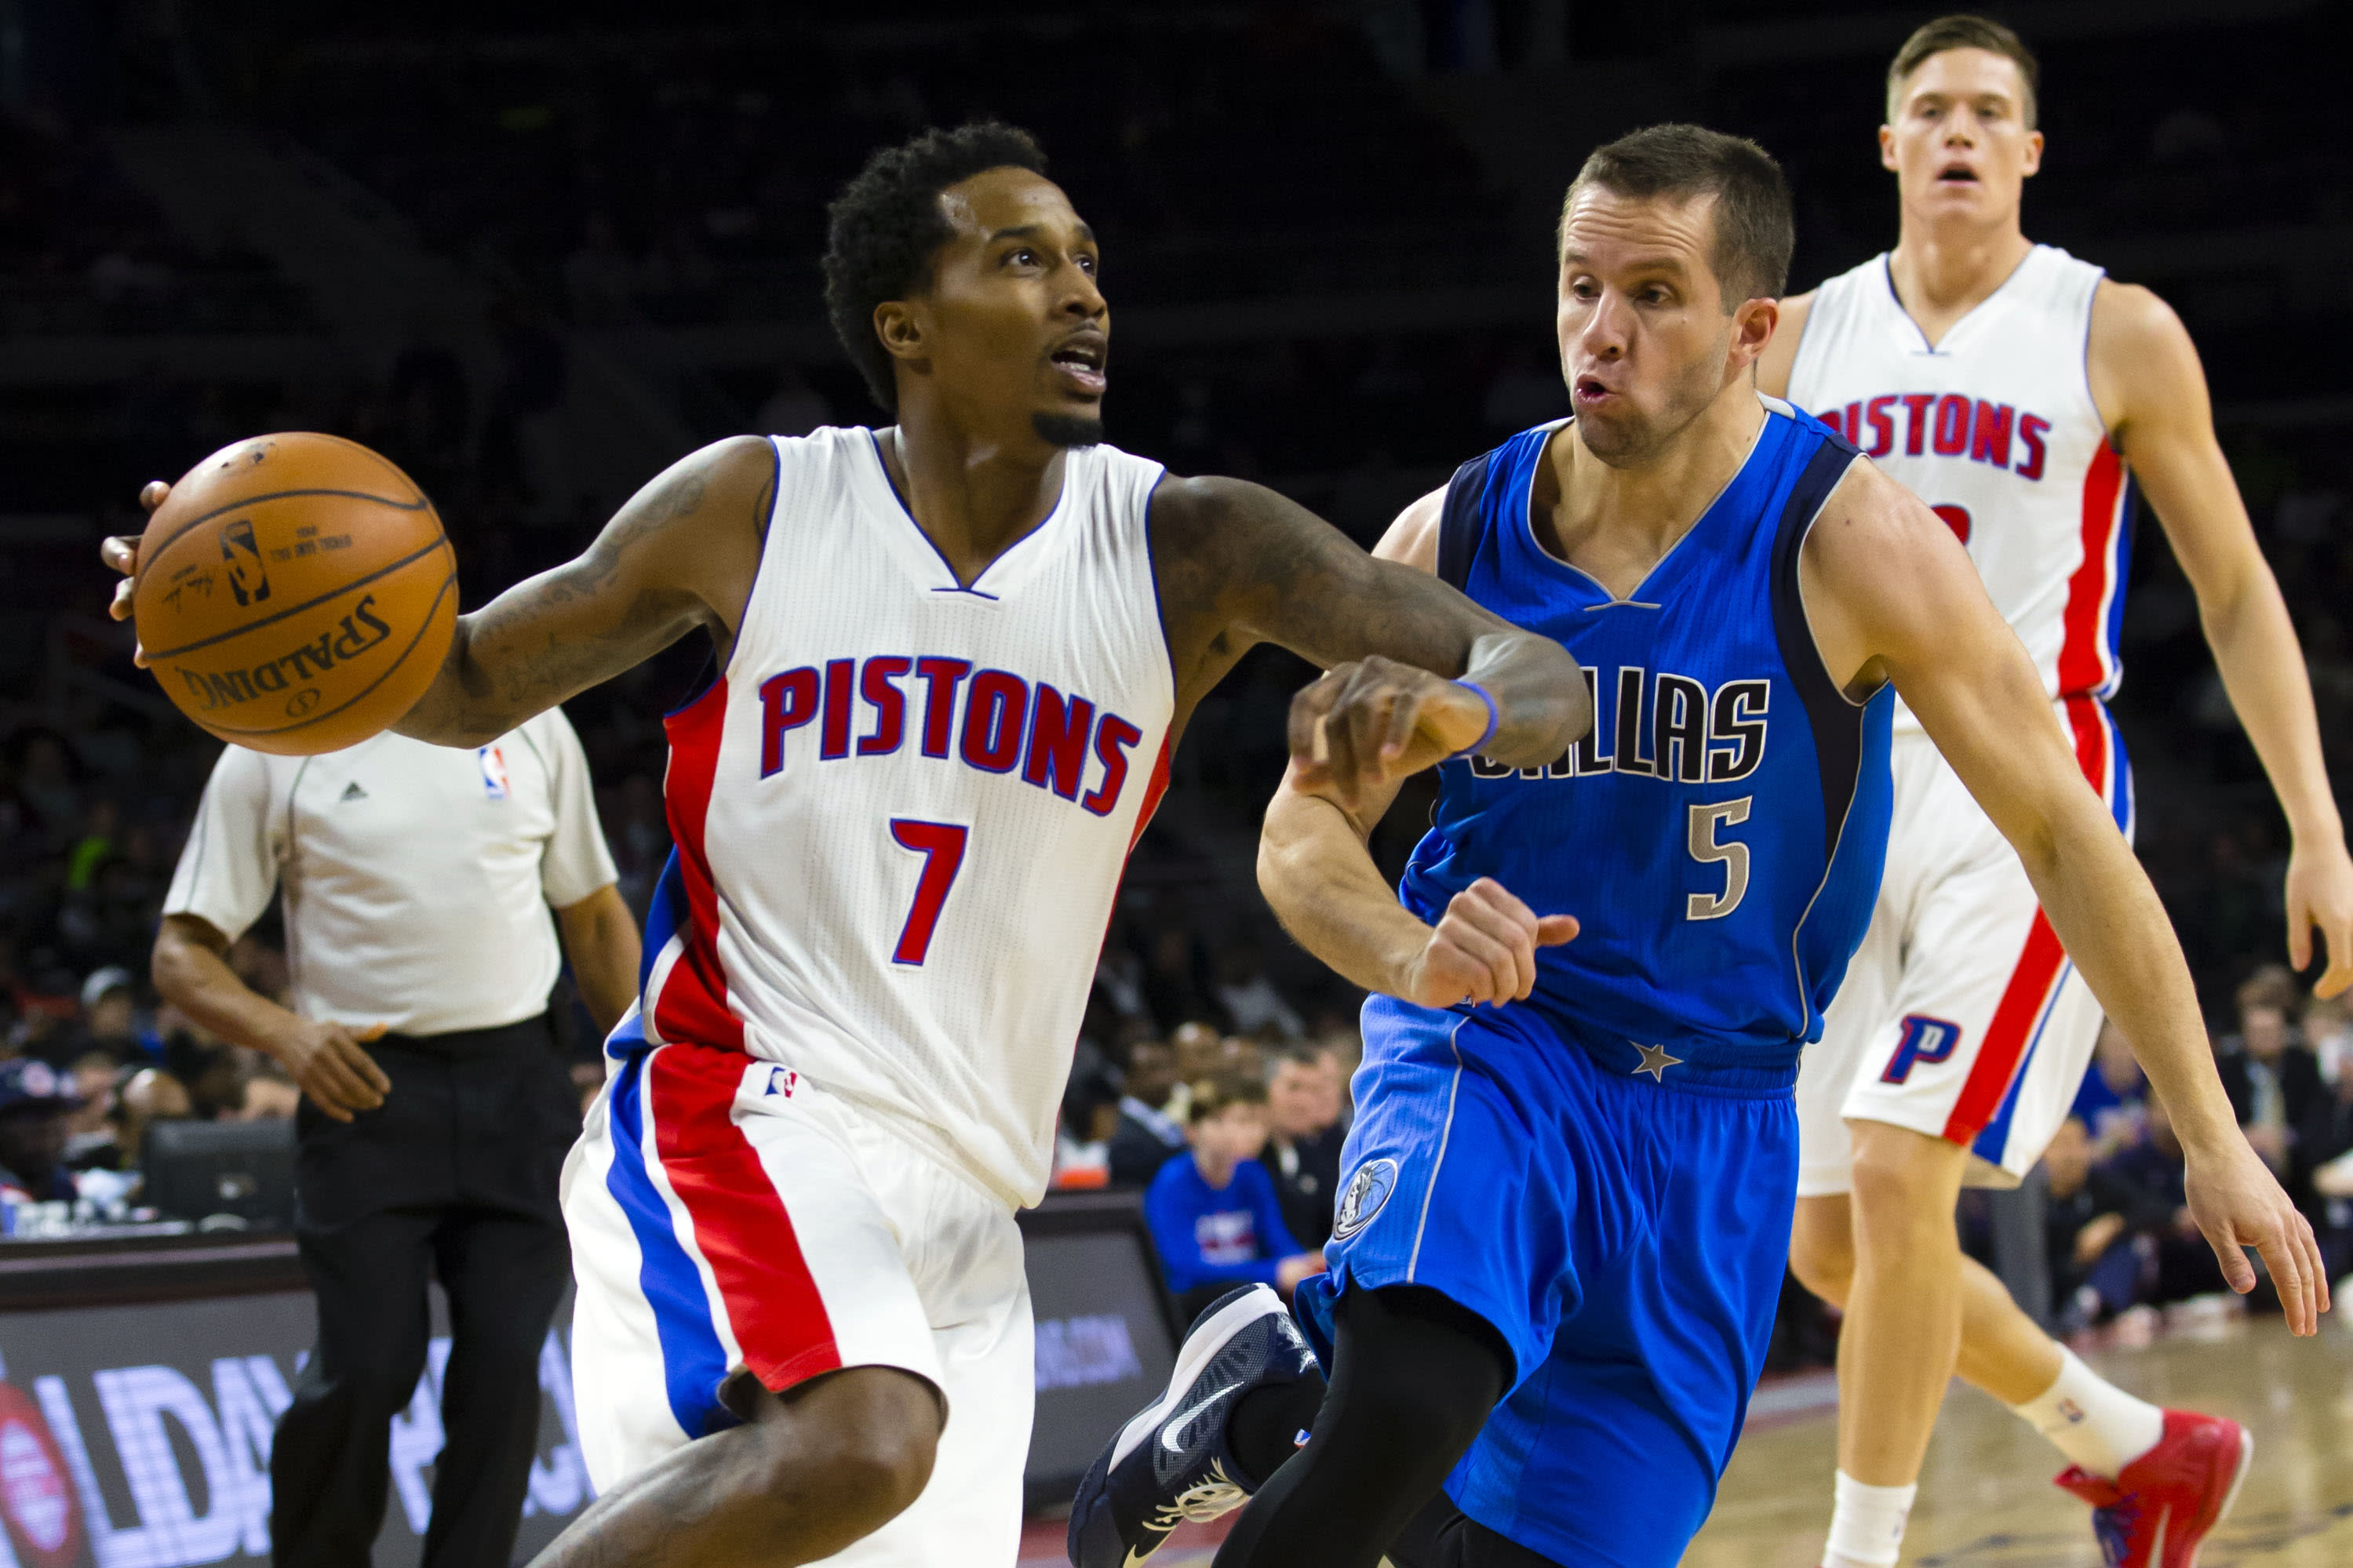 Brandon Jennings passed up an easy lay-up to miss a jumper